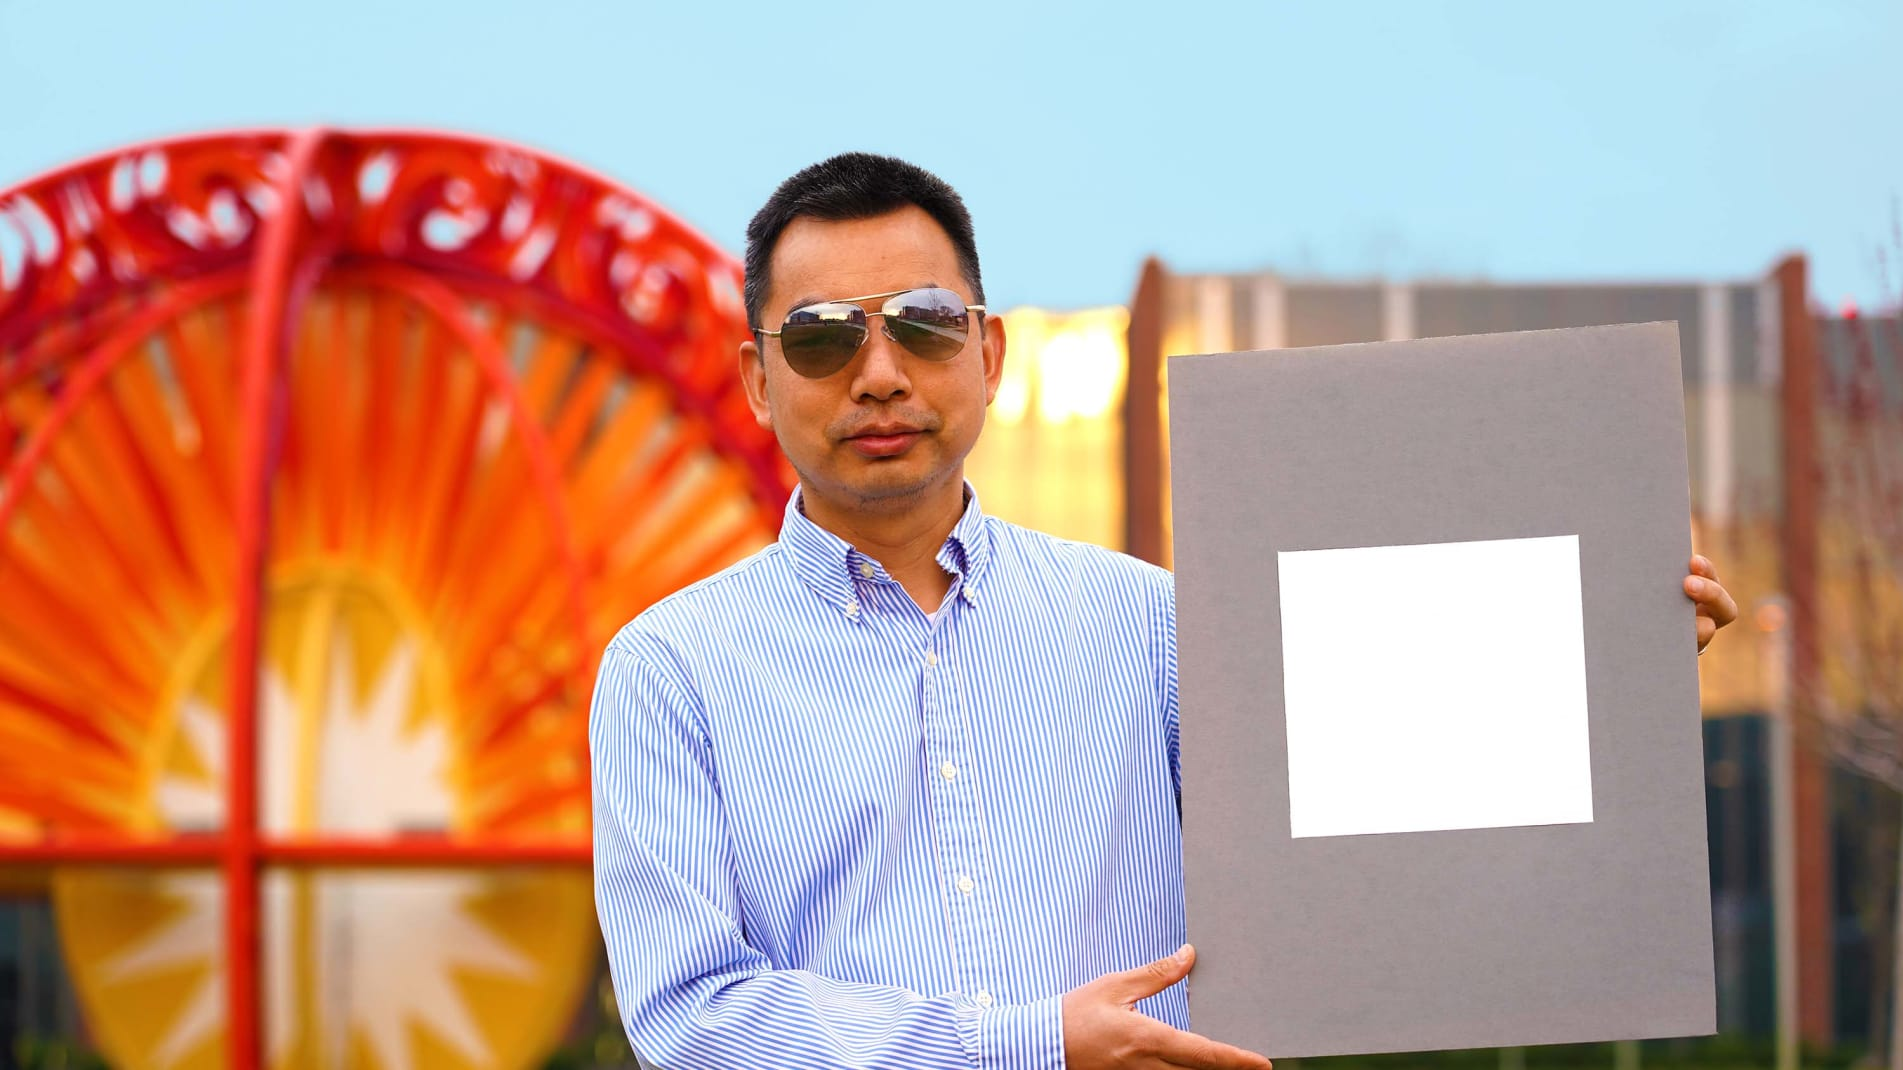 Xiulin Ruan, a Purdue University professor of mechanical engineering, poses with a sample of the new, sunlight reflecting paint.